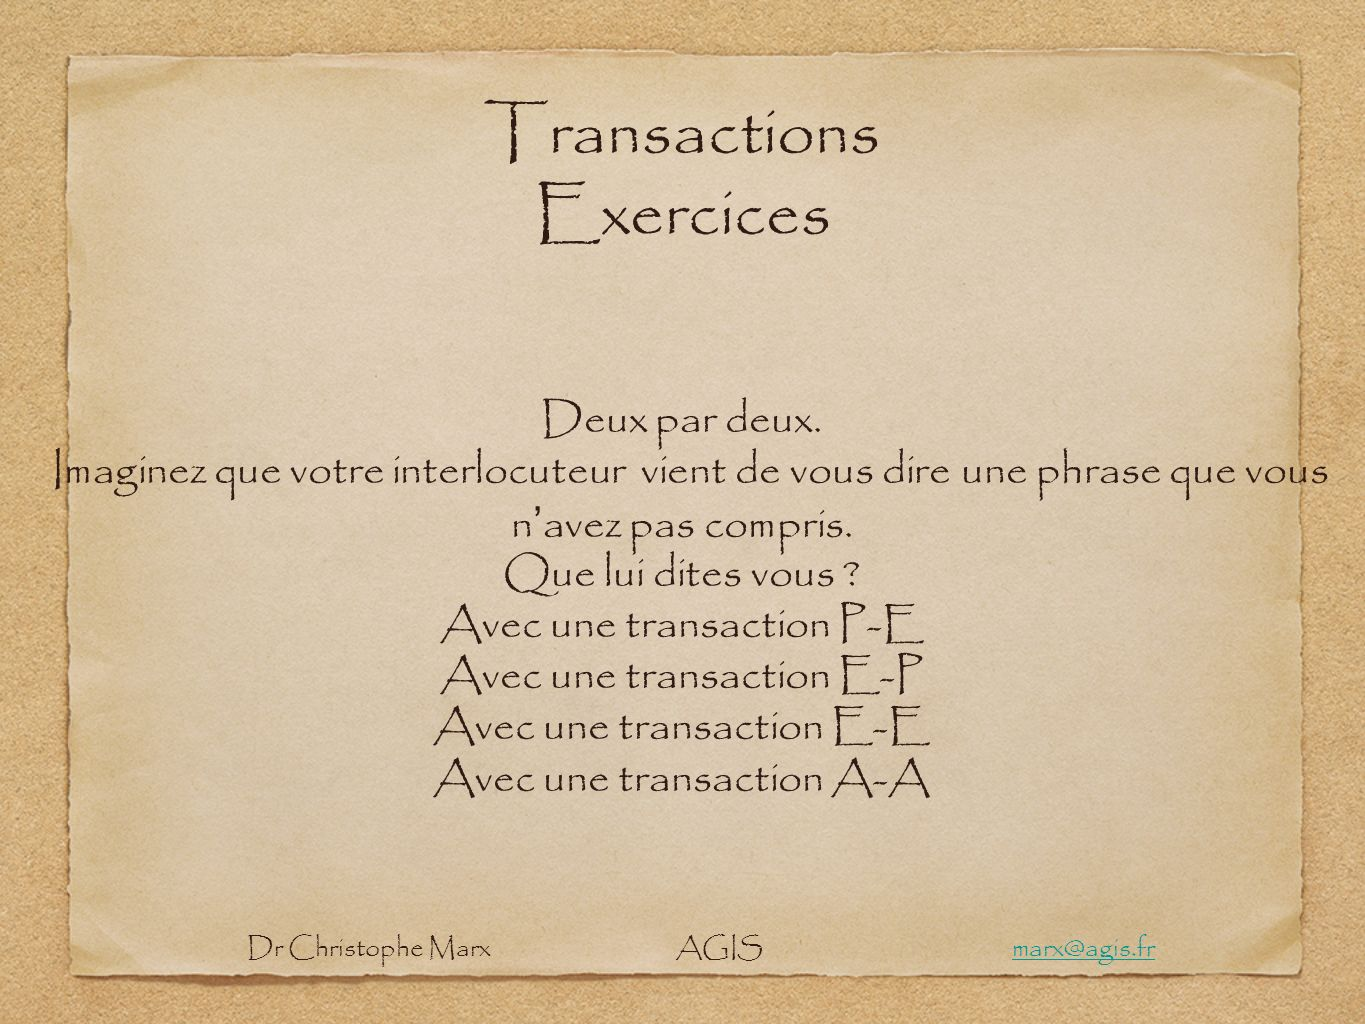 Transactions Exercices